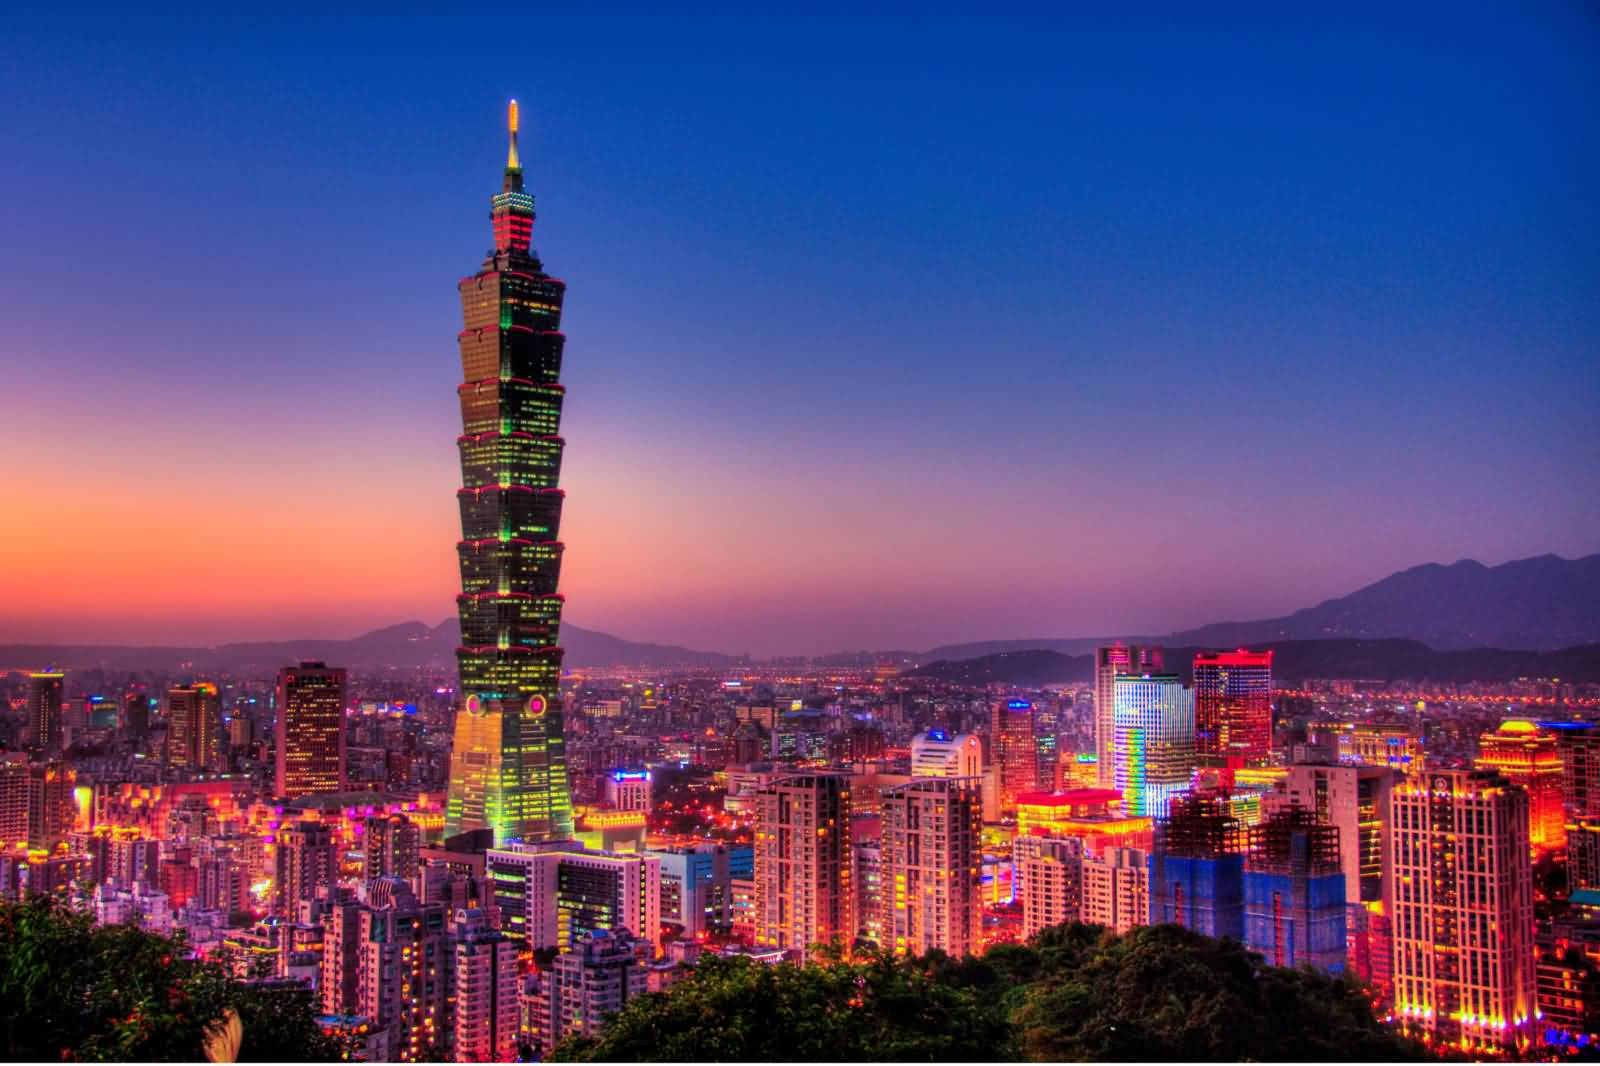 Scenic View Of The Taipei 101 Tower With Night Lights